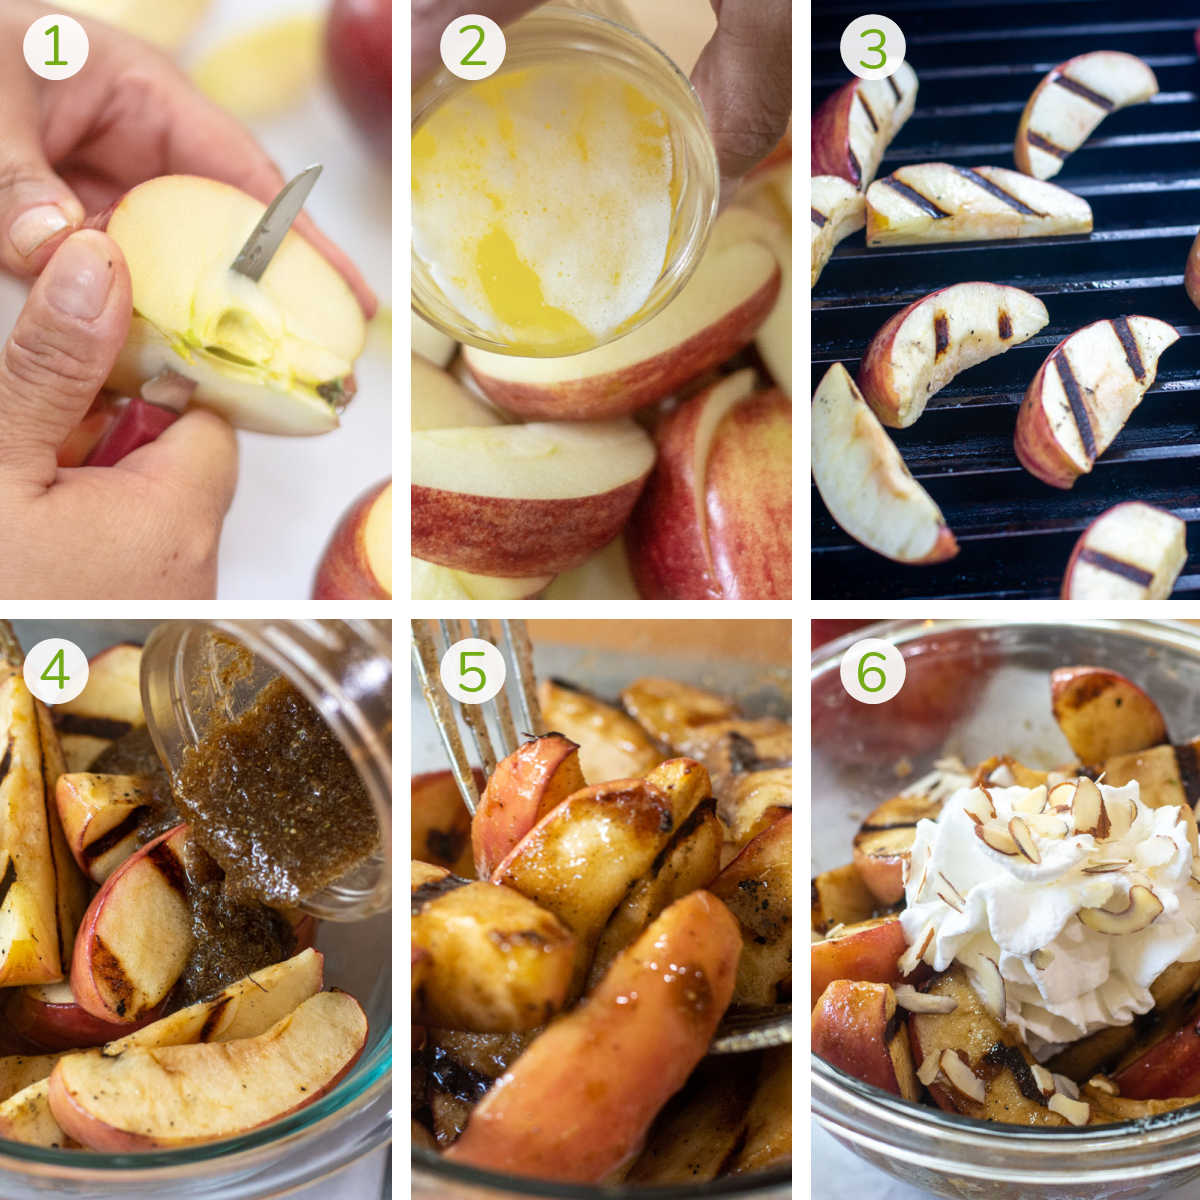 several process photos showing how to prepare apples for the grill, adding butter, coating with a brown sugar mix and serving.